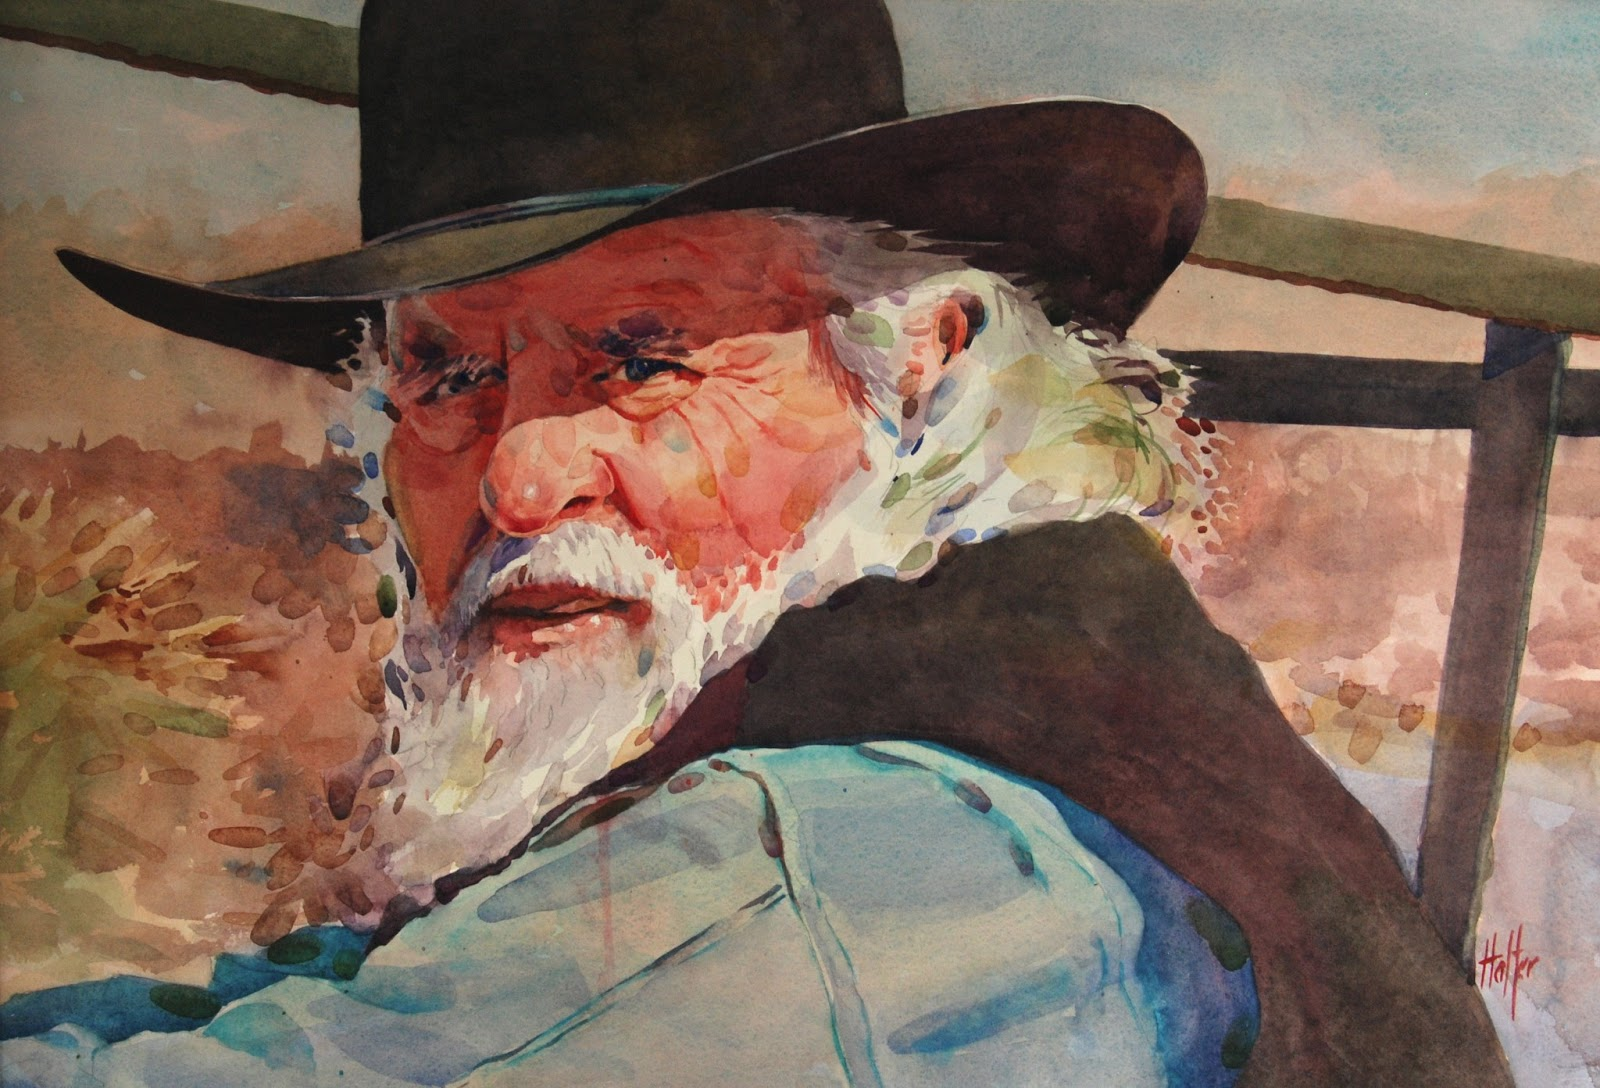 Watercolor art society houston tx - 14 X 22 Watercolor By Michael Holter